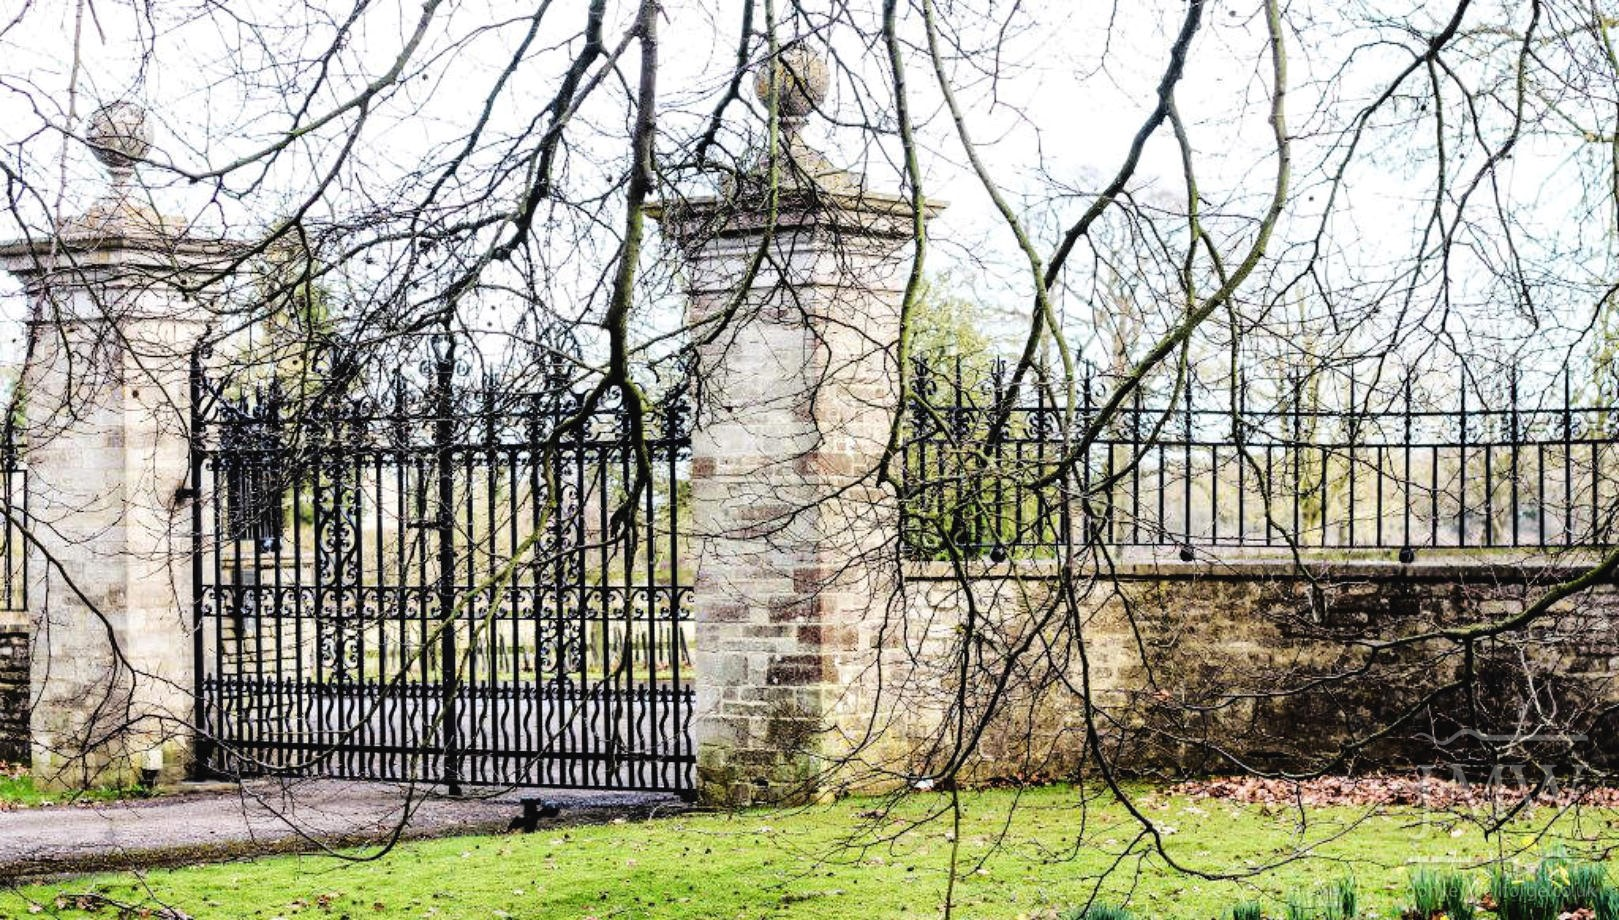 forged-ironwork-railings-country-estate-donkeywell-forge